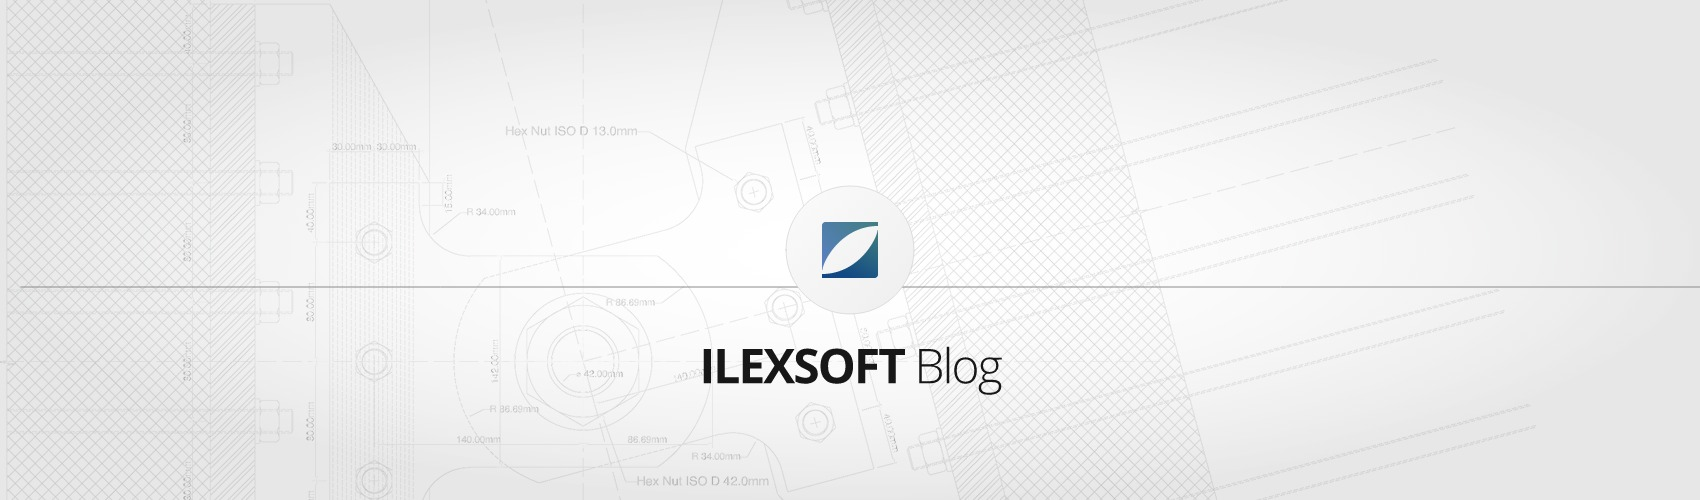 Welcome to the Ilexsoft Blog!